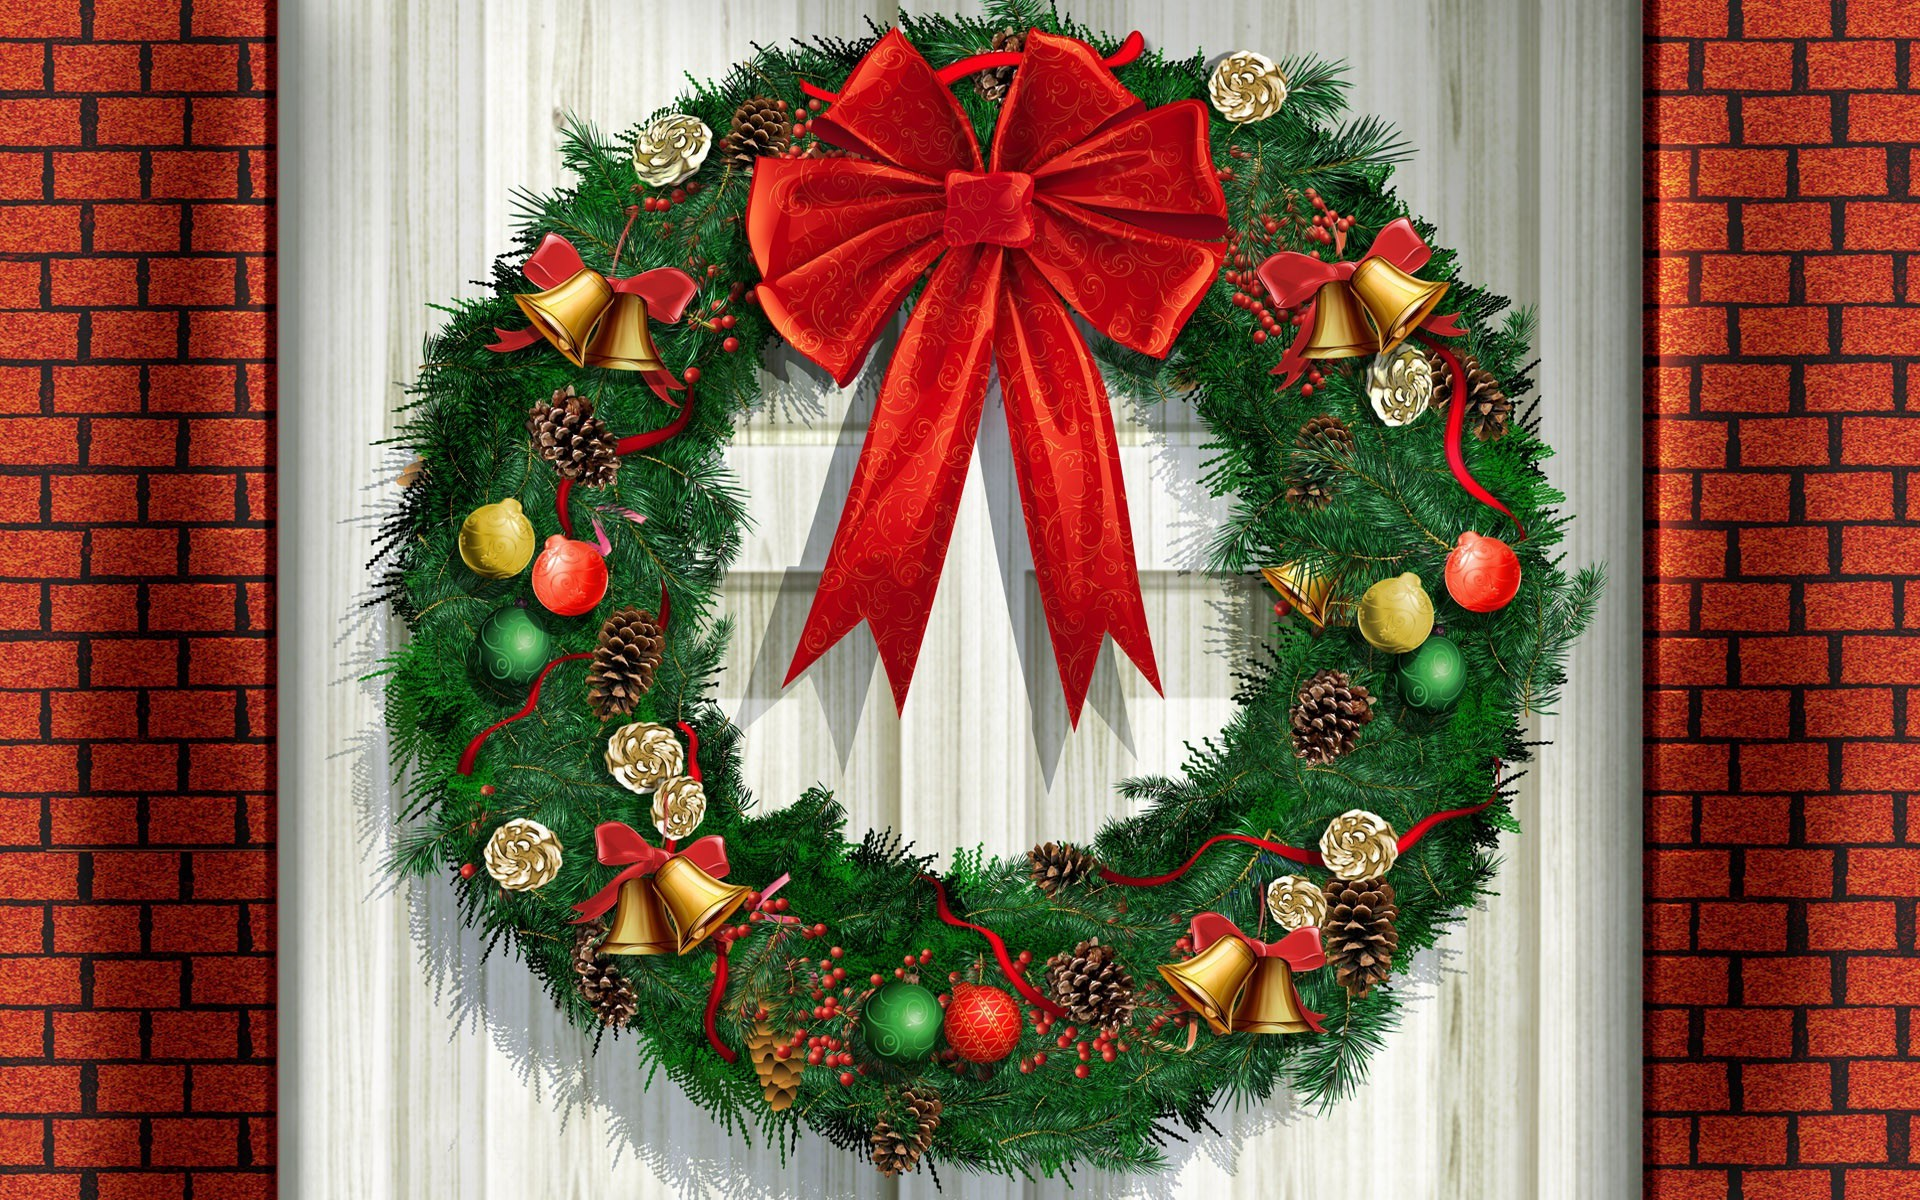 Christmas Wreaths Free Wallpapers - Wallpaper, High ...